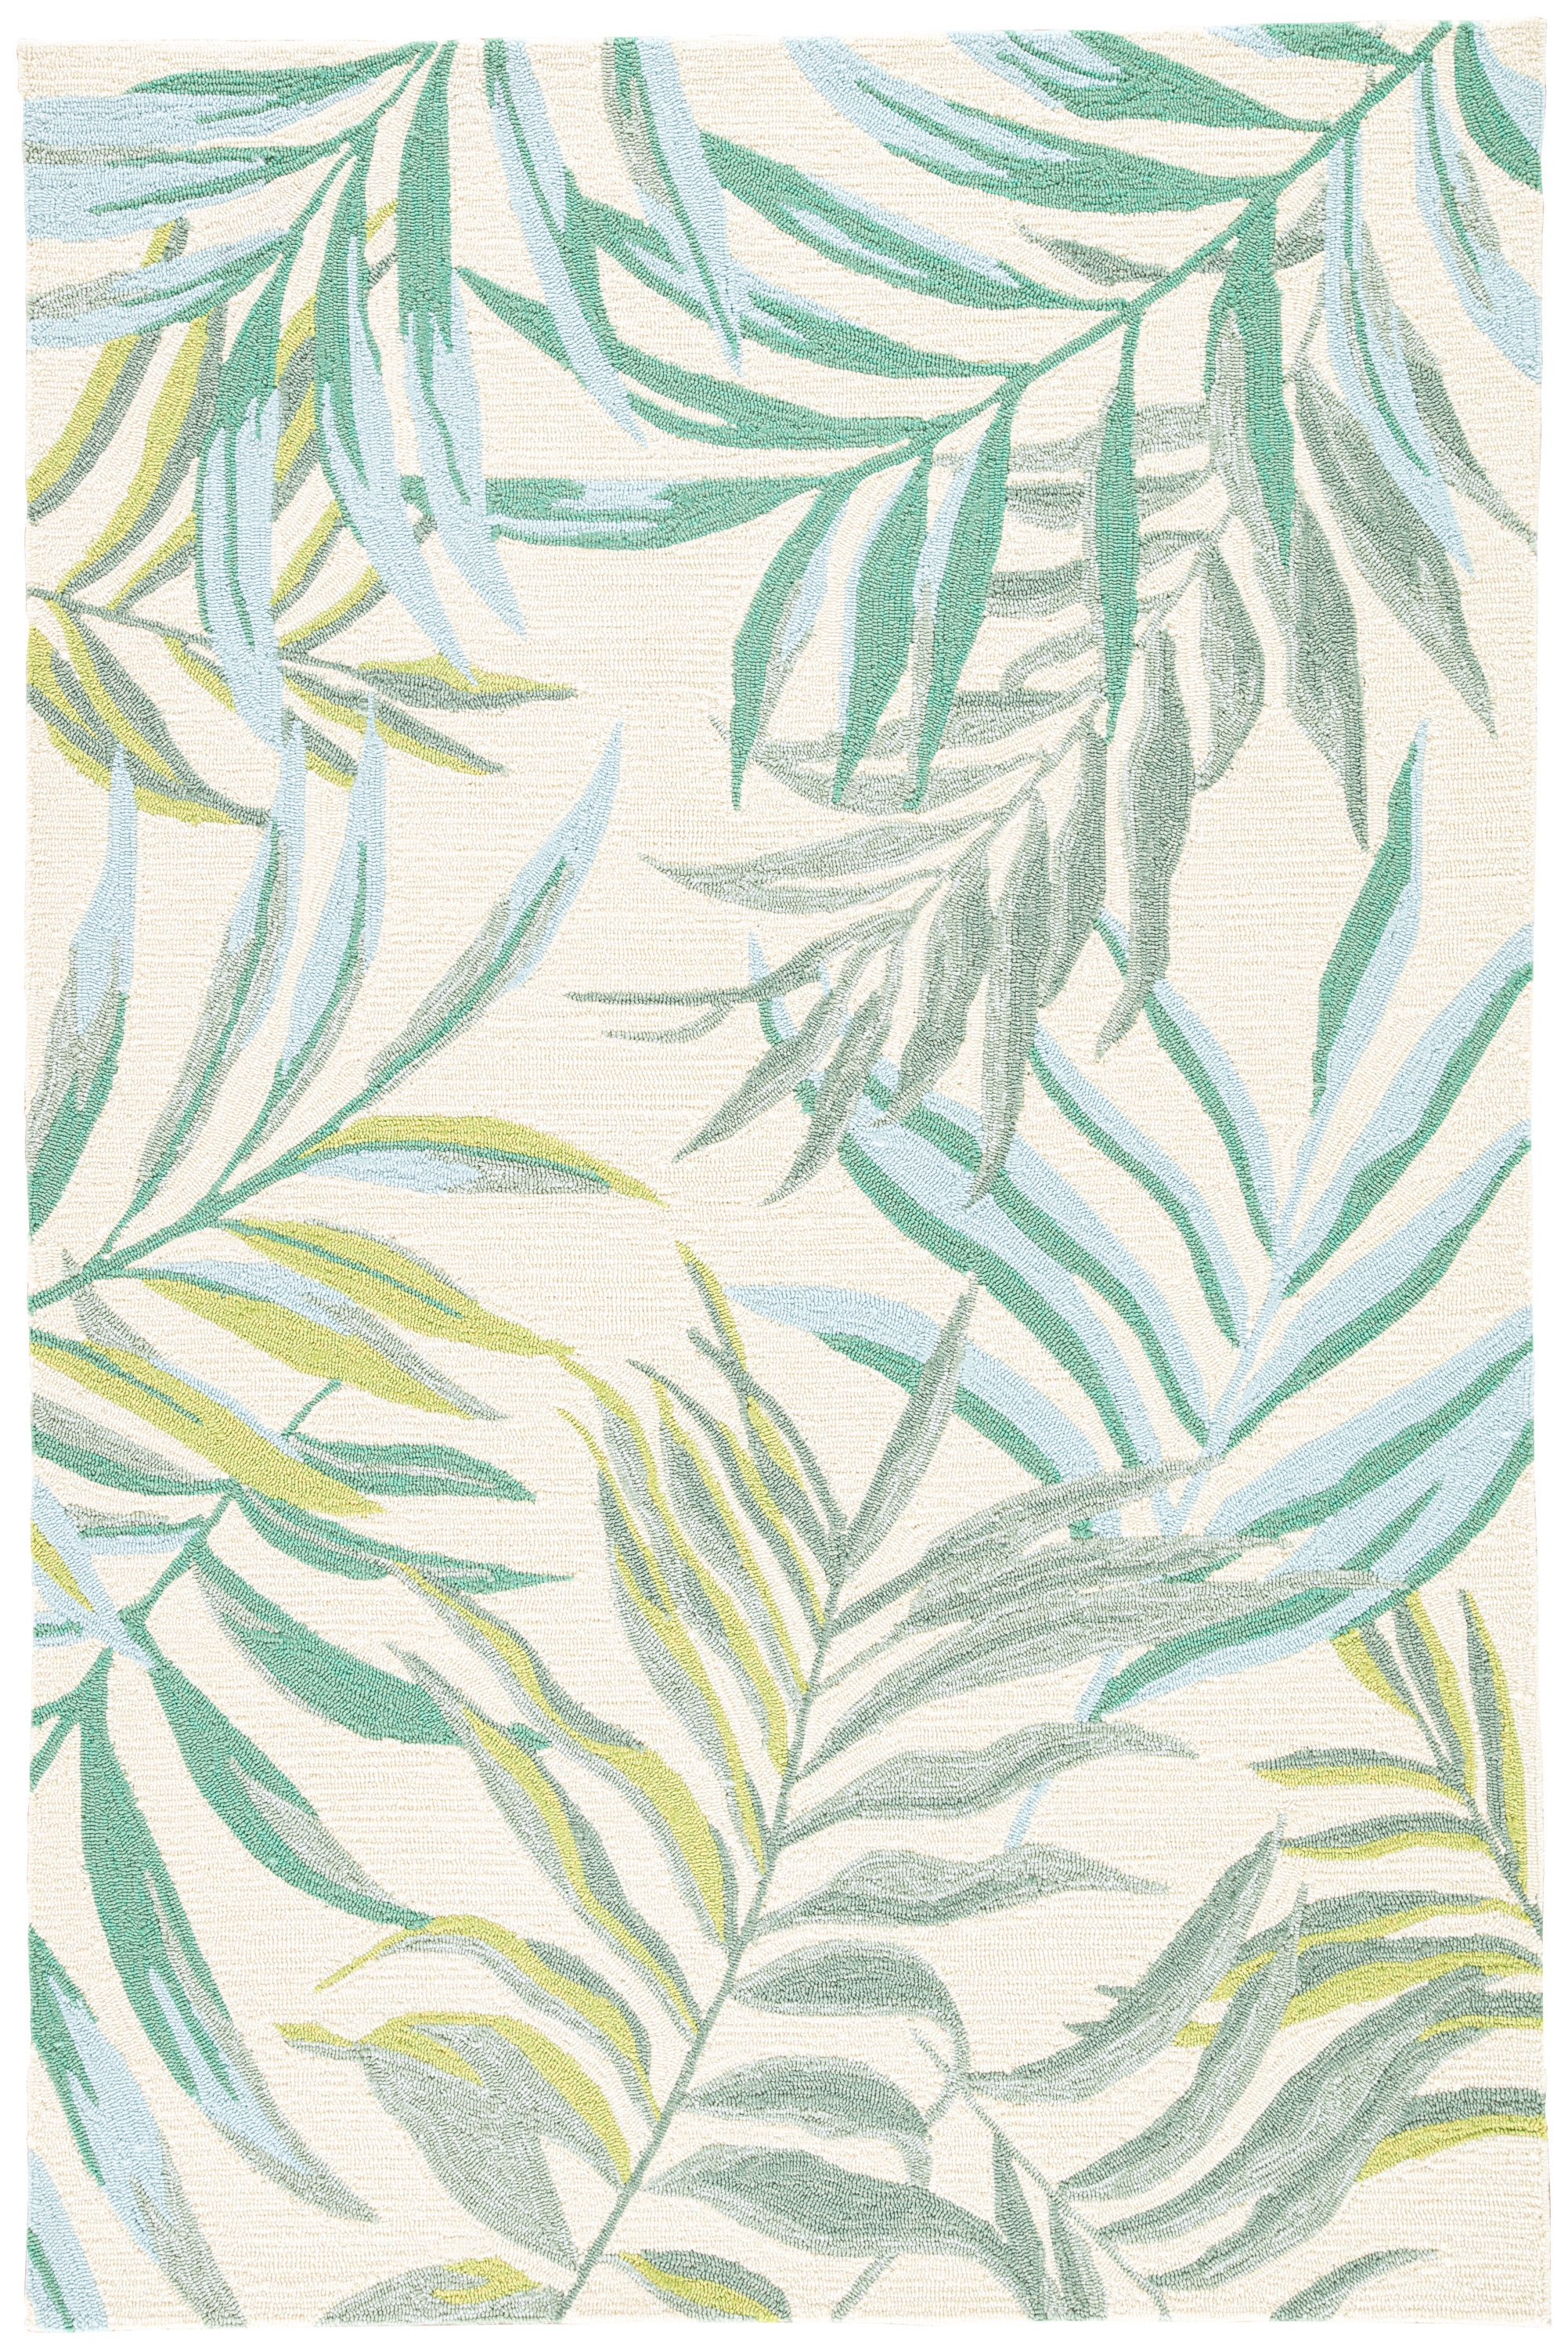 Rectangle 5x76 Green Floral Hand Hooked Synthetics Casual recommended for Bedroom, Bathroom, Outdoor, Dining Room, Office, Hallway, Living Room